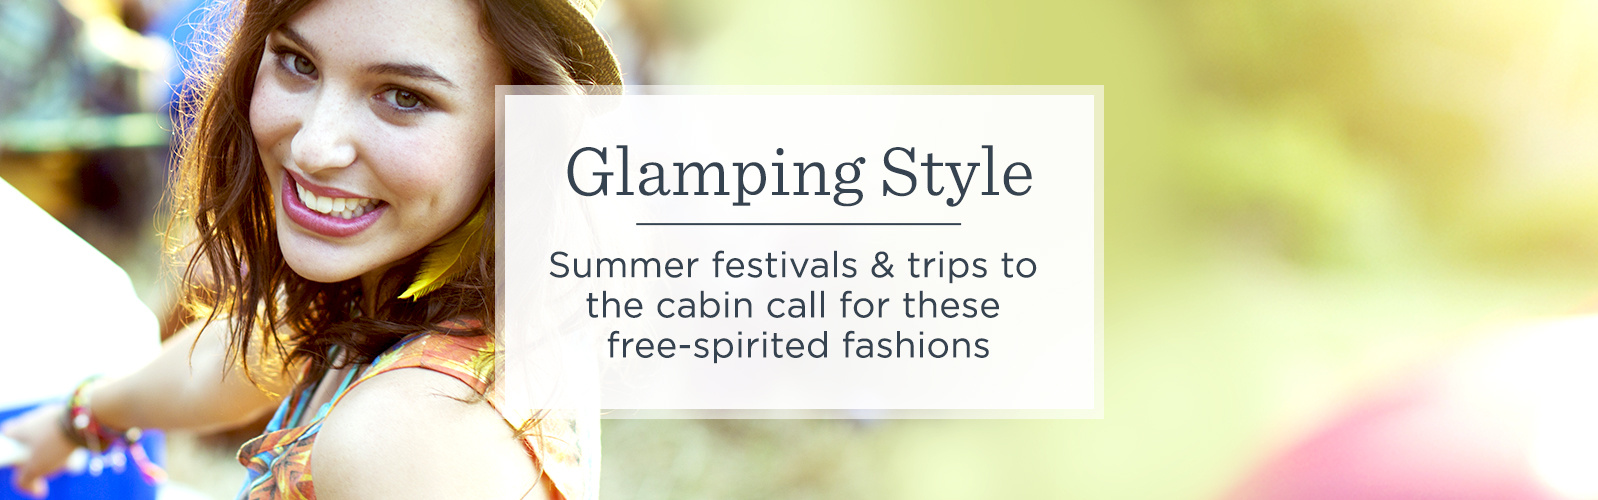 Glamping Style  Summer festivals & trips to the cabin call for these free-spirited fashions